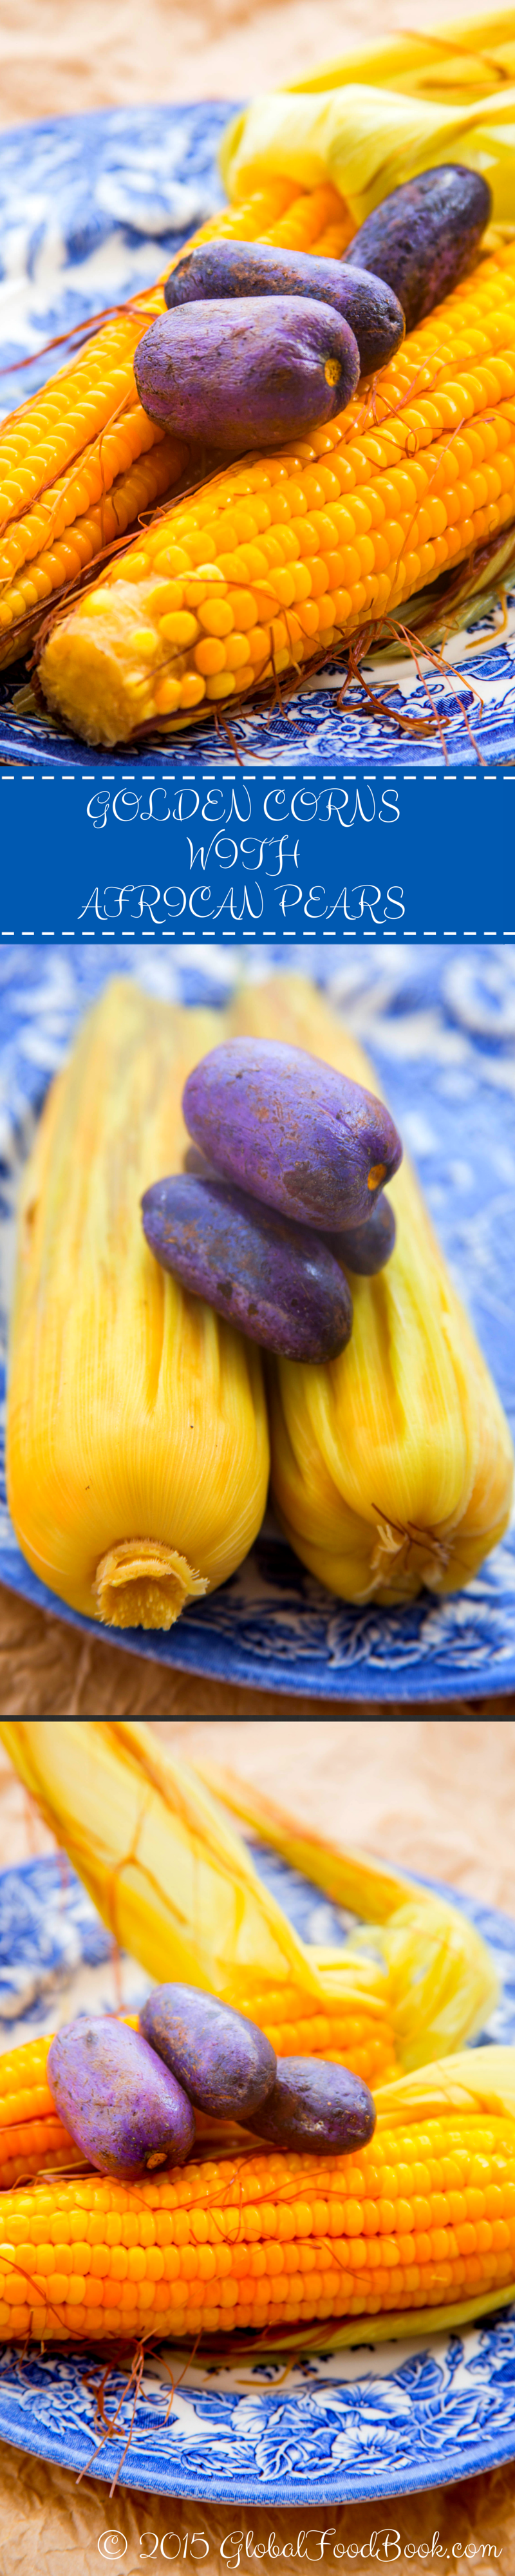 GOLDEN CORNS WITH AFRICAN PEARS